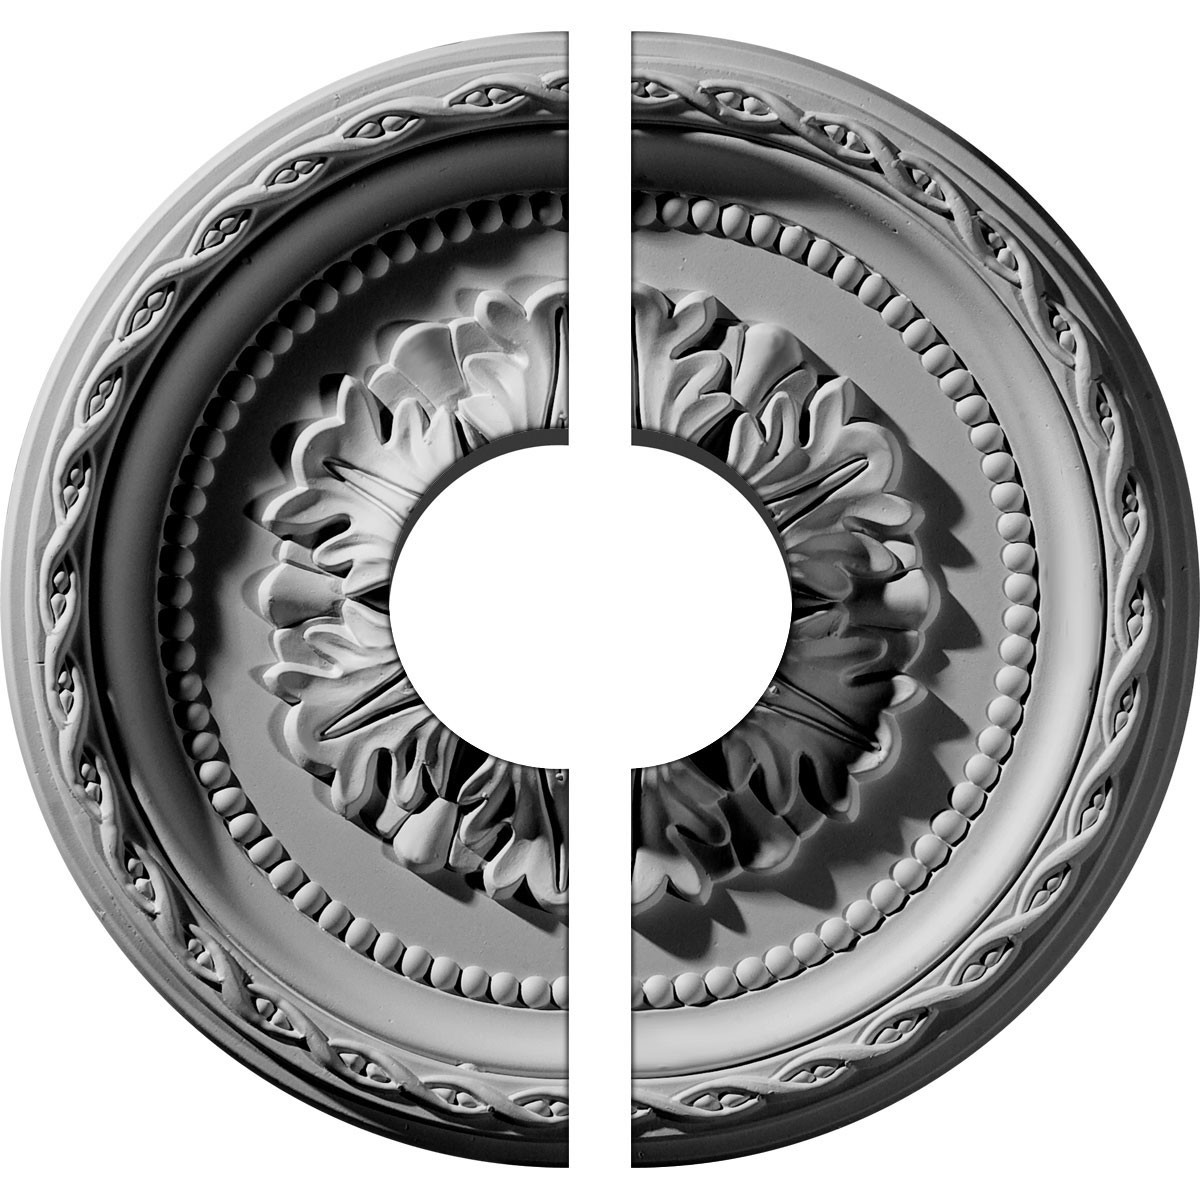 """EM-CM11PA2-03500 - 11 1/2""""OD x 3 1/2""""ID x 1""""P Palmetto Ceiling Medallion, Two Piece (Fits Canopies up to 3 1/2"""")"""